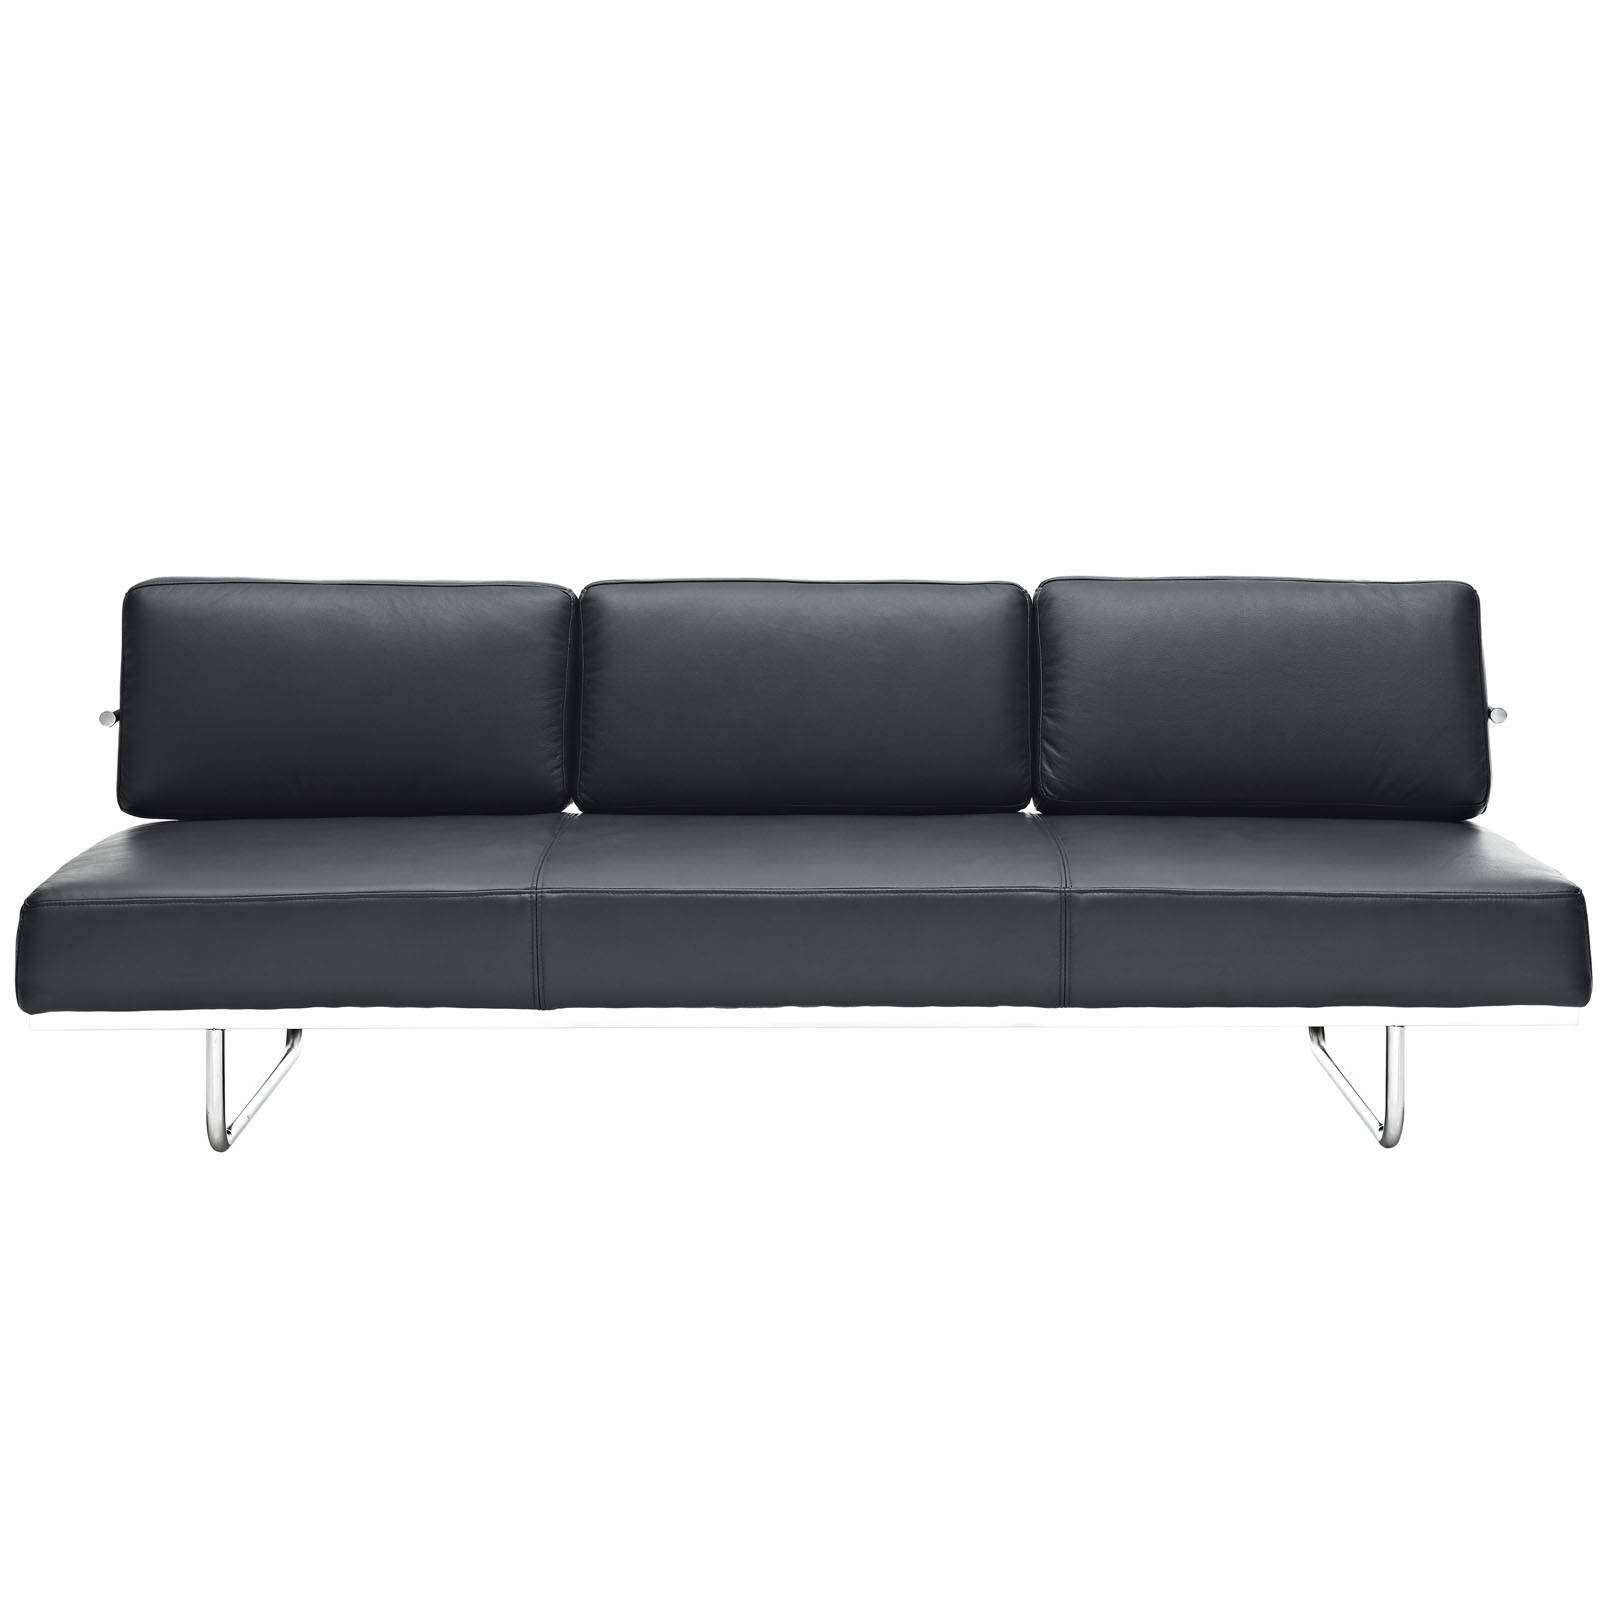 le corbusier style lc5 sofa daybed. Black Bedroom Furniture Sets. Home Design Ideas